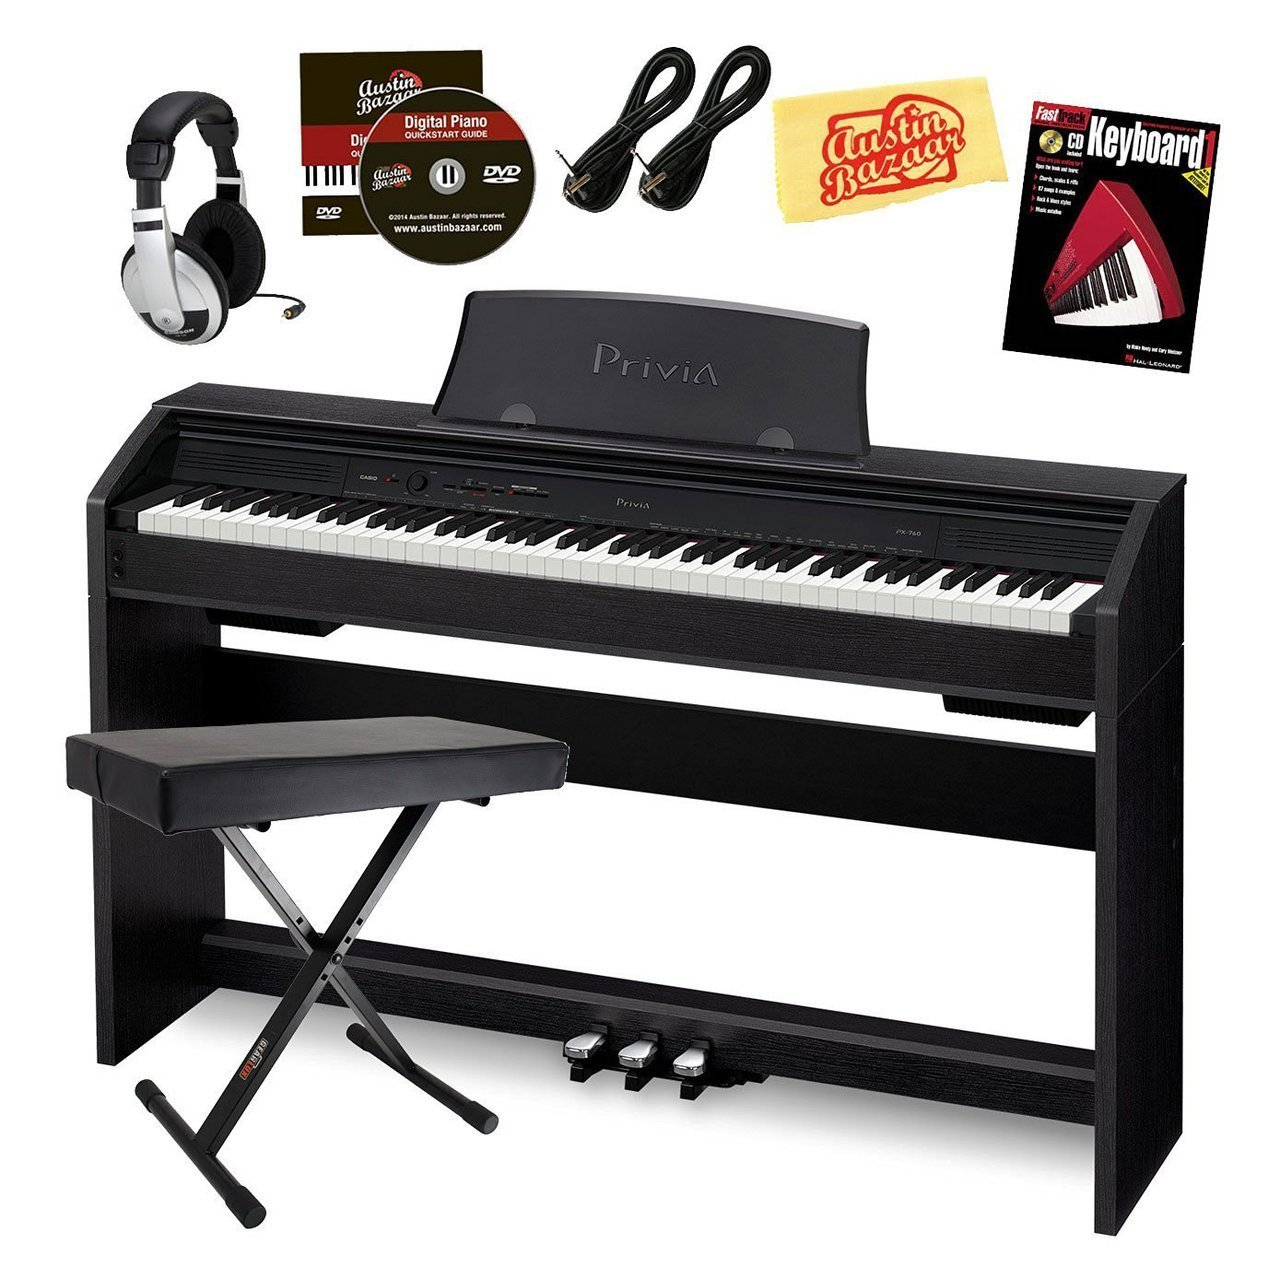 Specs & Features Of Casio PX 760 Privia Digital Piano